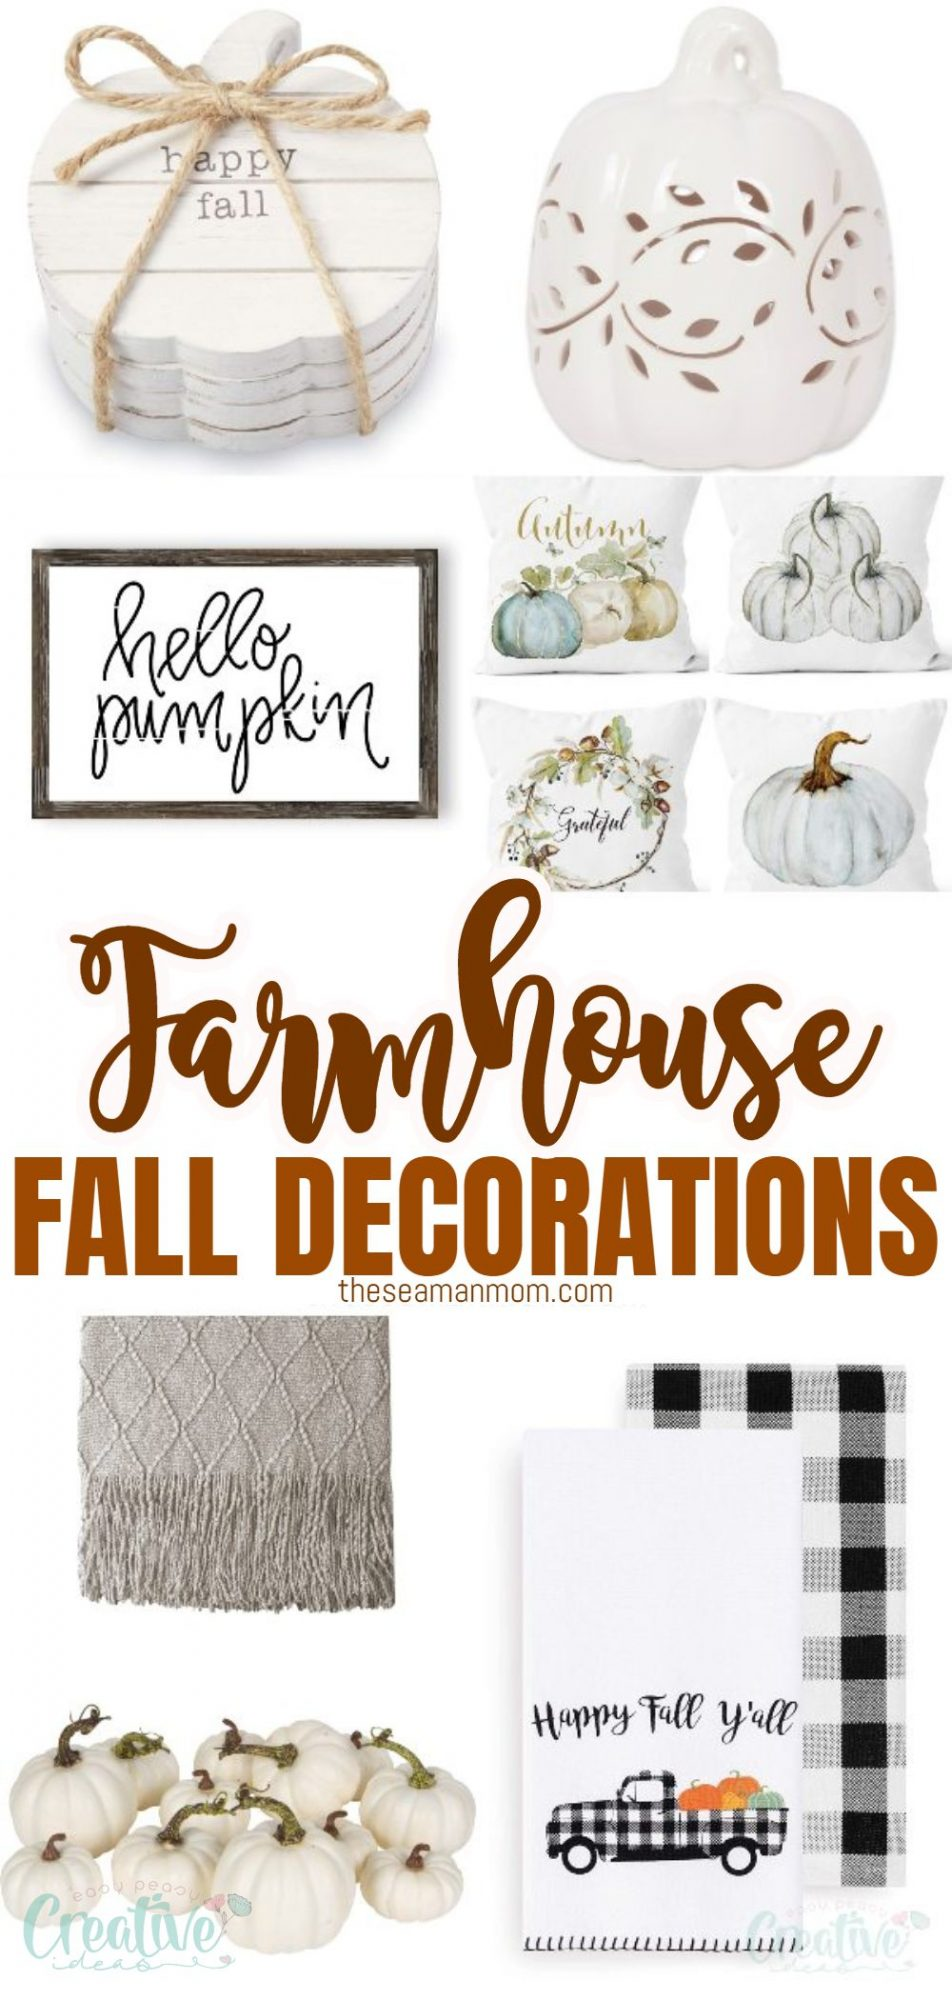 Photo collage featuring farmhouse fall decorations to add to your home decor